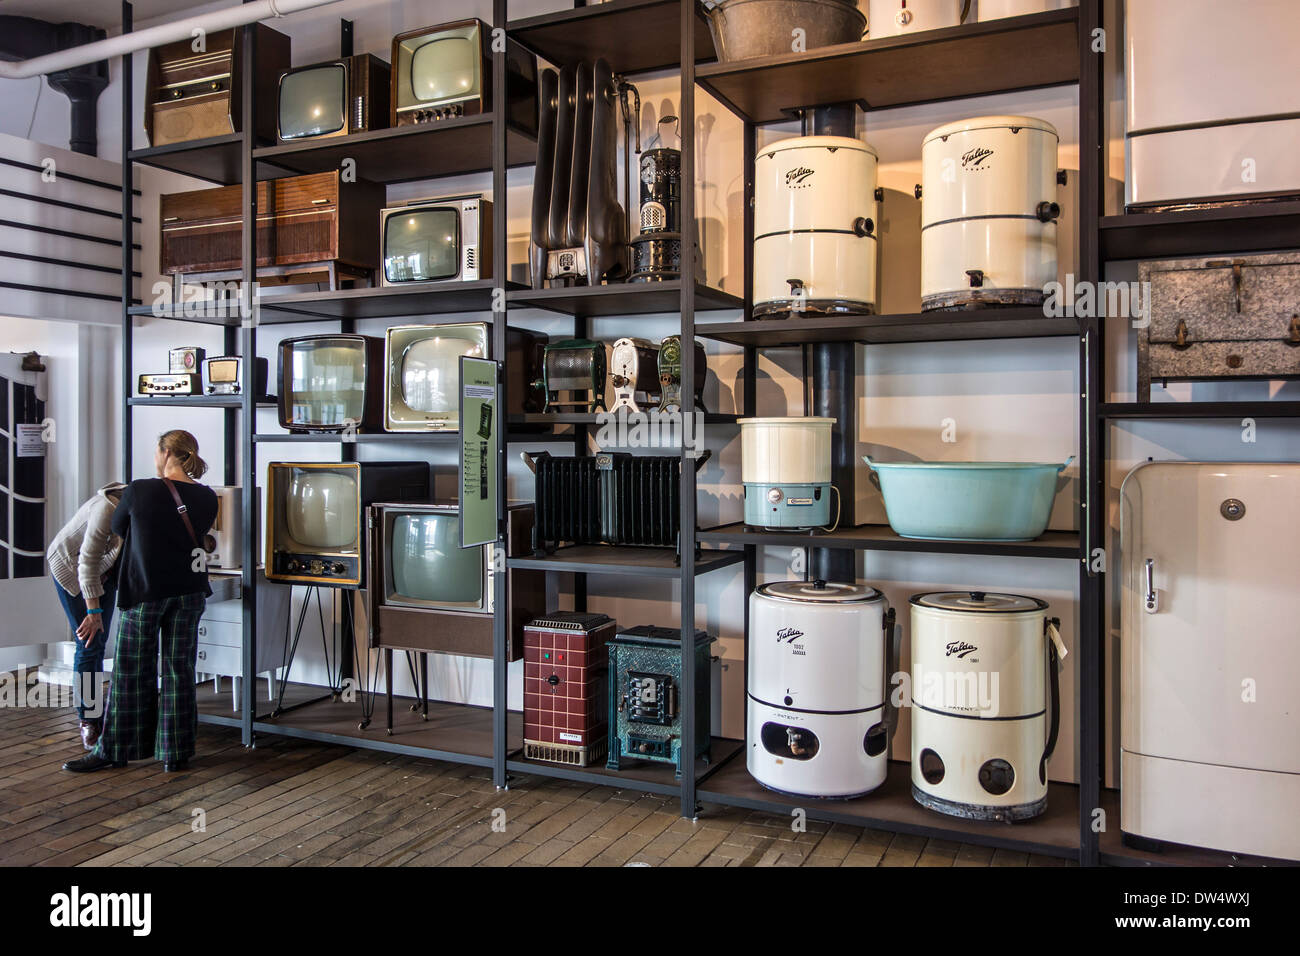 Vintage home appliances like radios, TV sets, heaters, washing machines and refrigerators from the fifties and sixties at MIAT - Stock Image